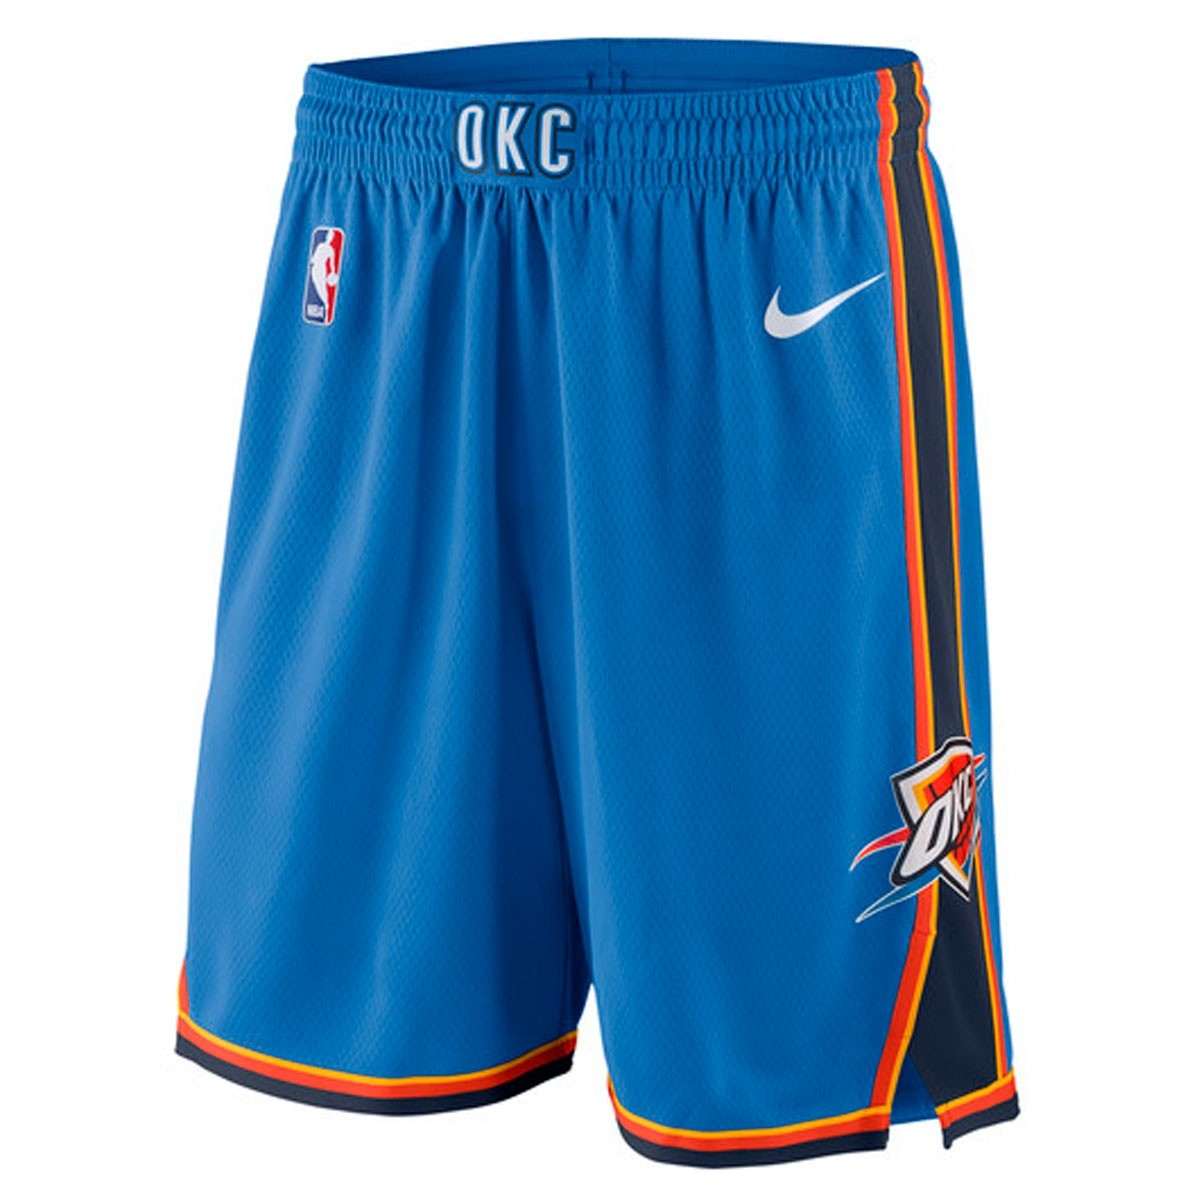 Nike Junior NBA OKC Swingman Short 'Icon Edition'